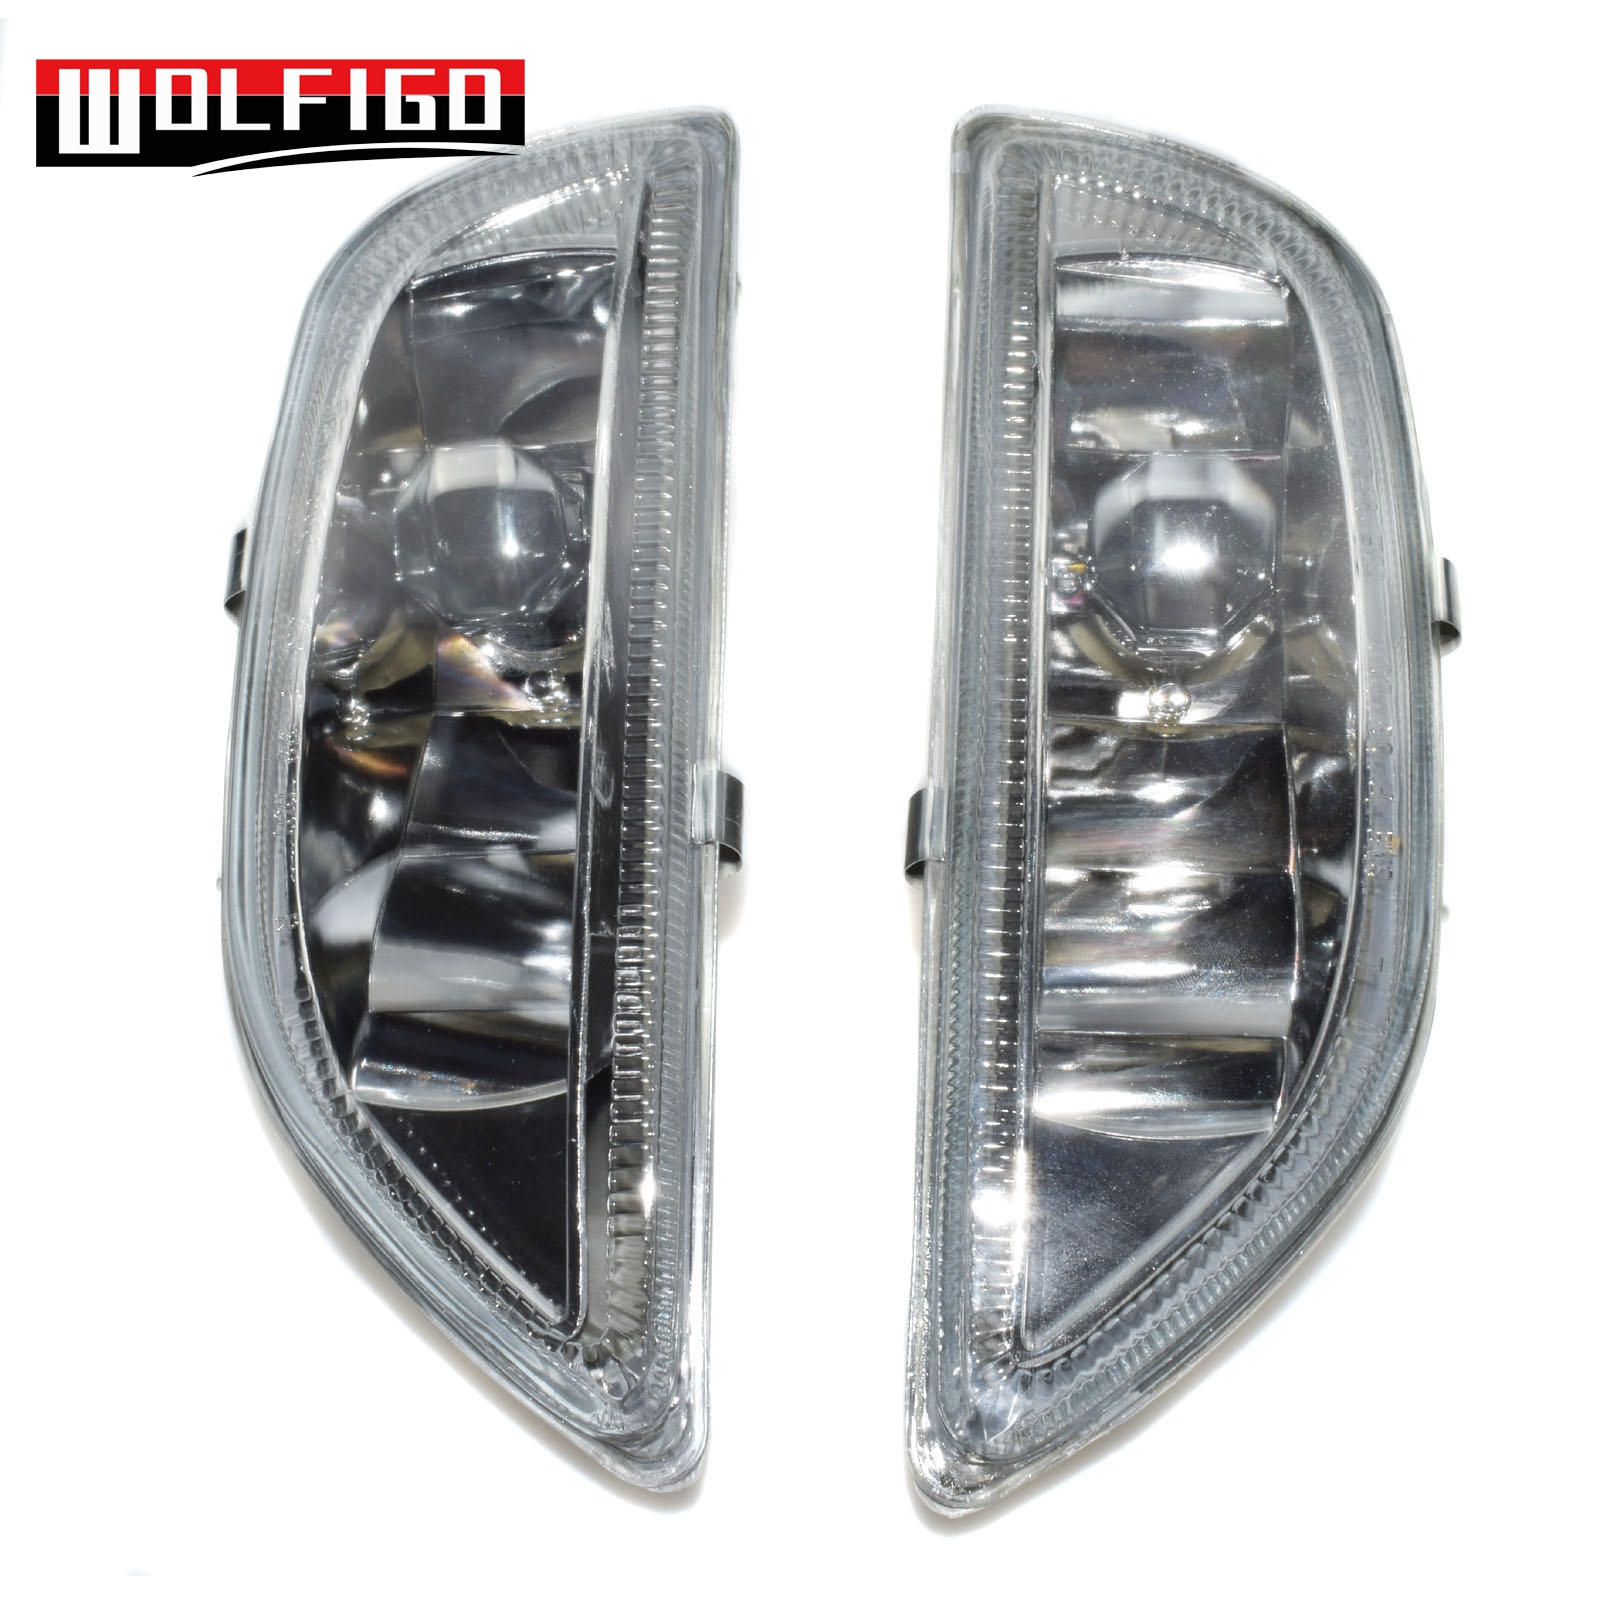 WOLFIGO FOR 2001 2002 Toyota COROLLA CLEAR LENS BUMPER DRIVING FOG BULBS Lights LH RH Left Right Side New